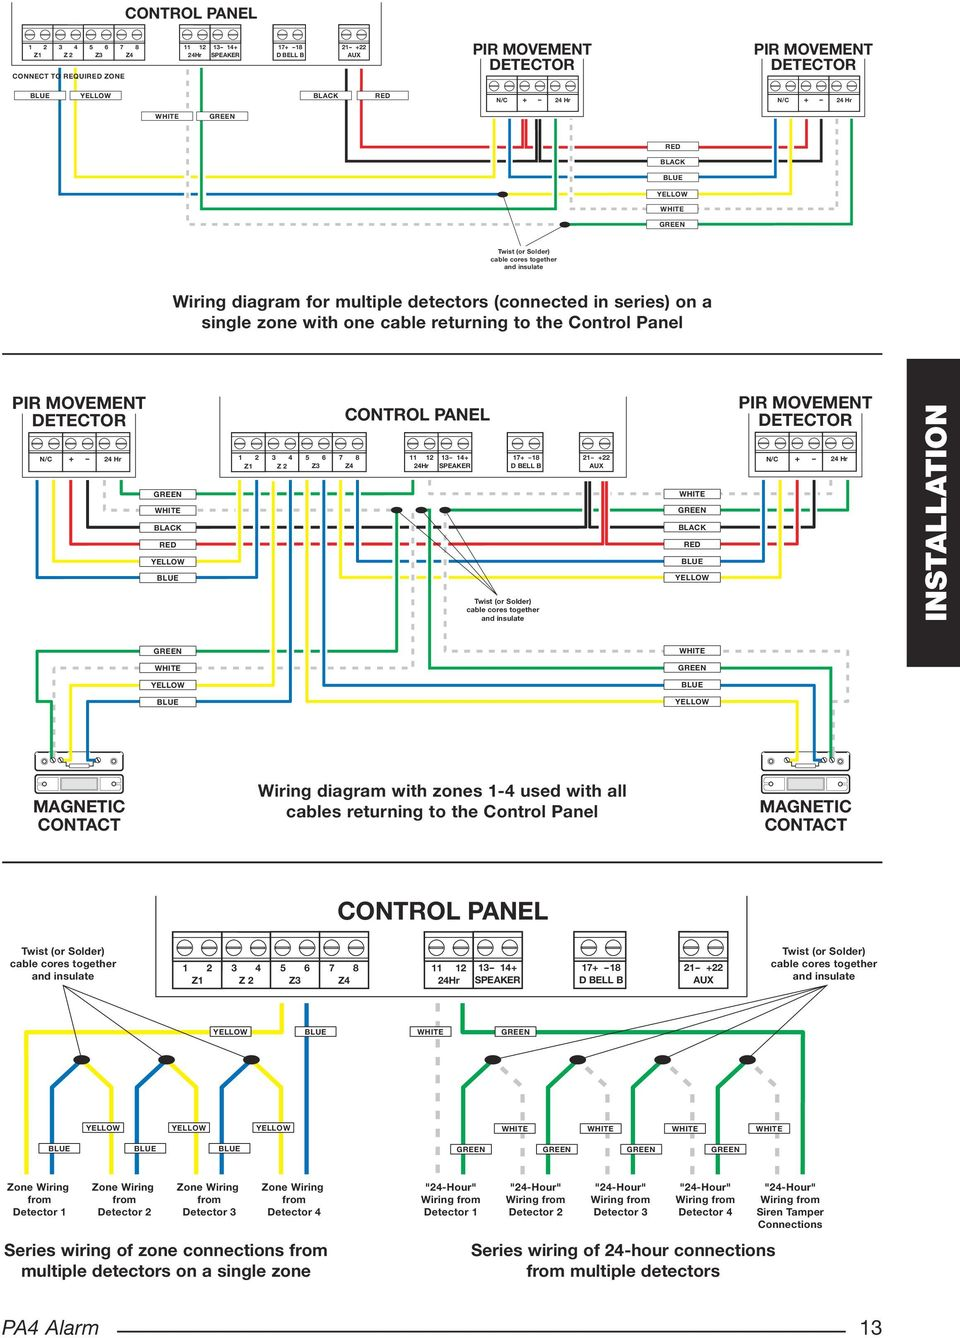 Pa4 4 Zone Wired Intruder Alarm System Installation Operating Tamper Wiring Diagram For Control Panel Pir Movement Detector N C 24 Hr Black Red Yellow Blue